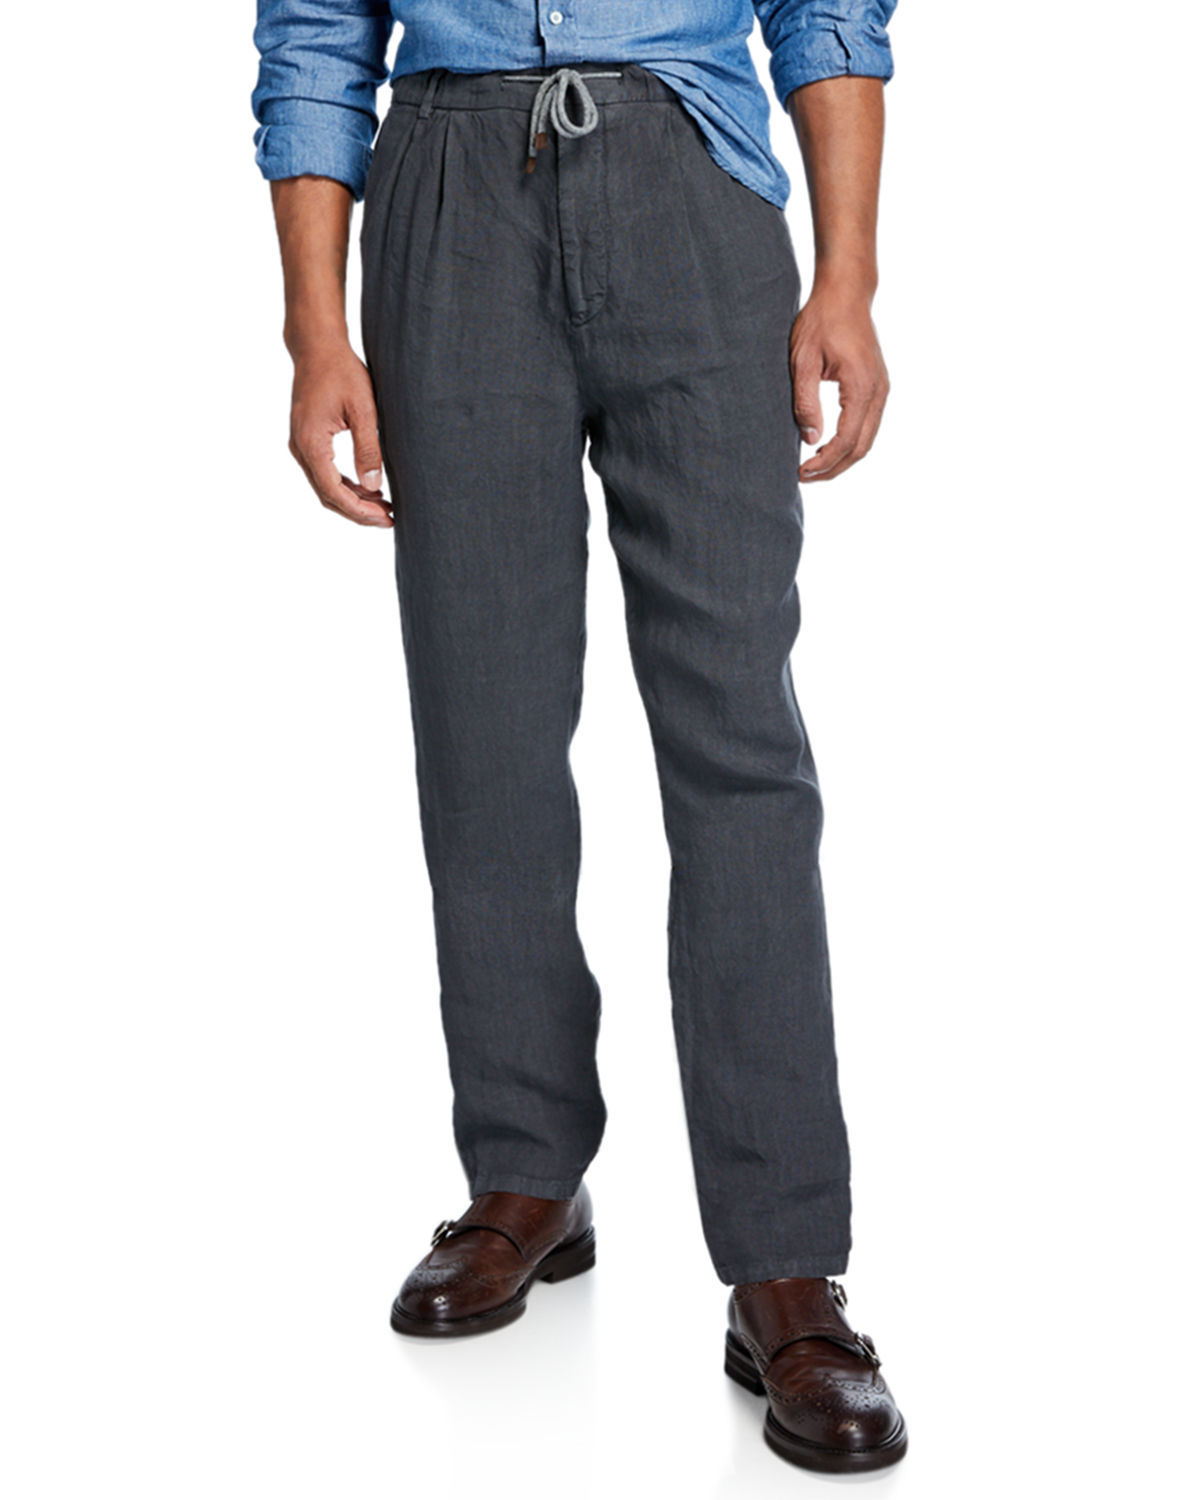 Men's Drawstring Pleated Trousers